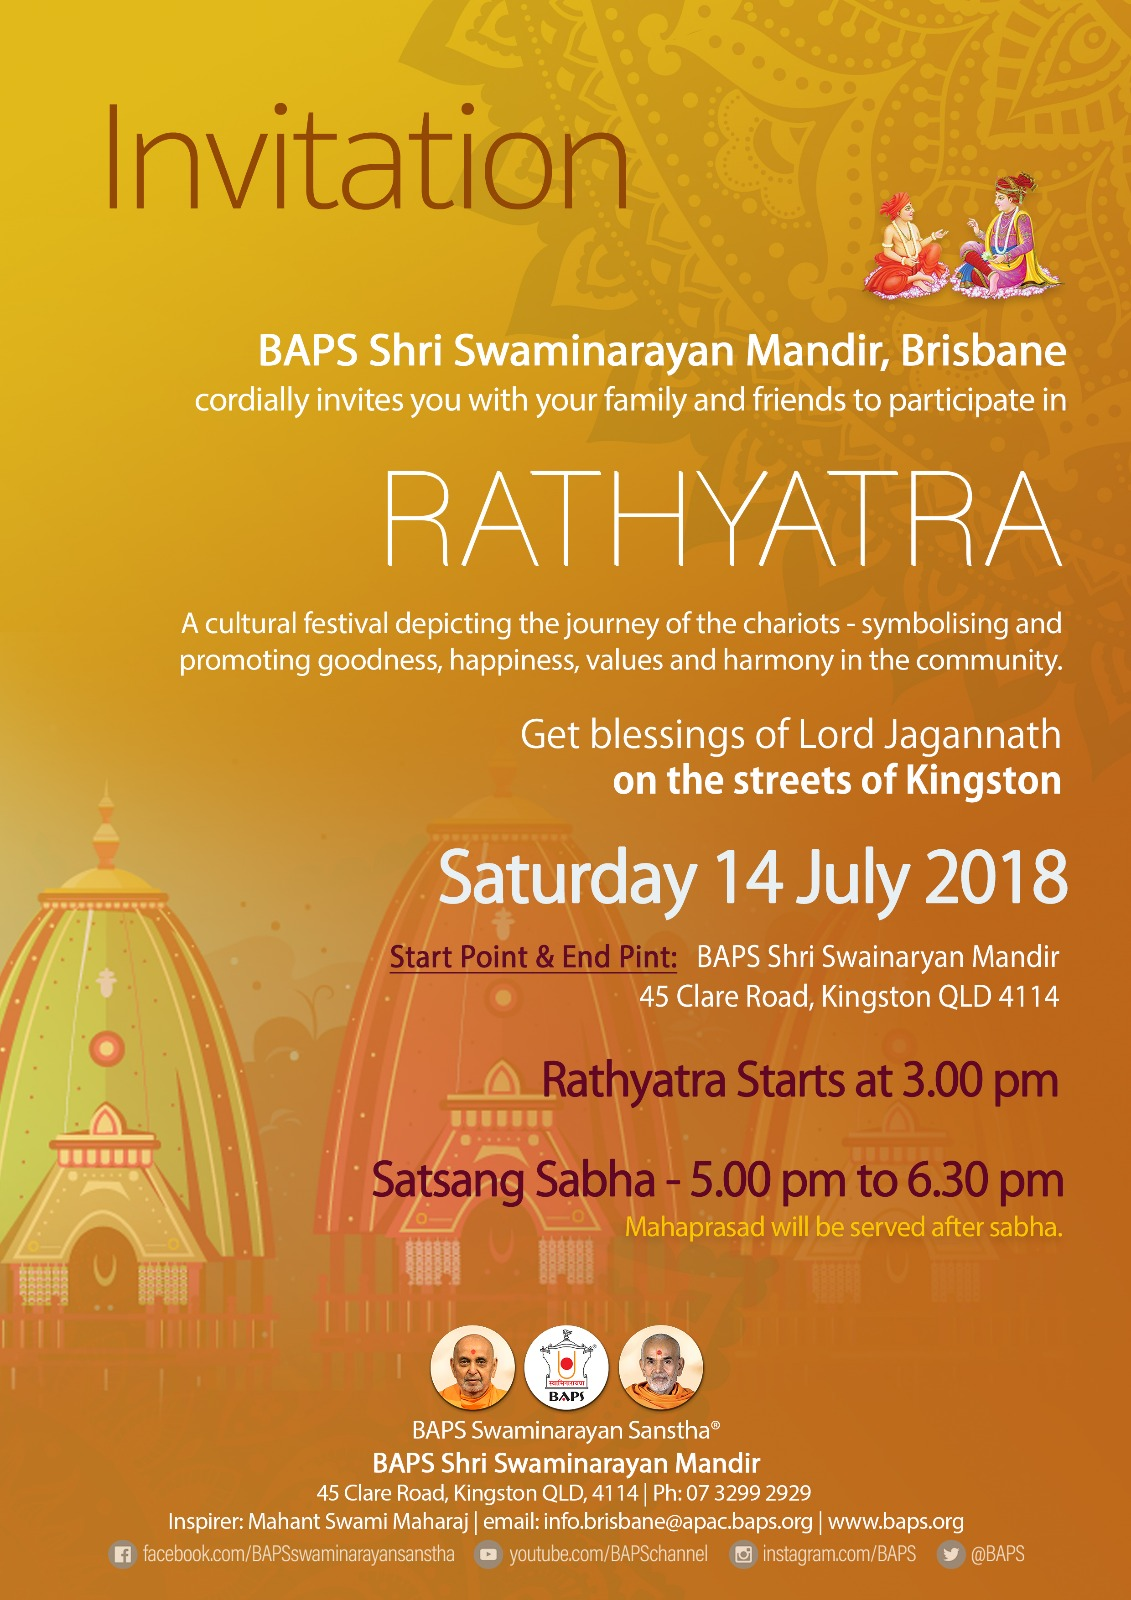 Rathyatra By Baps Indian News Queensland